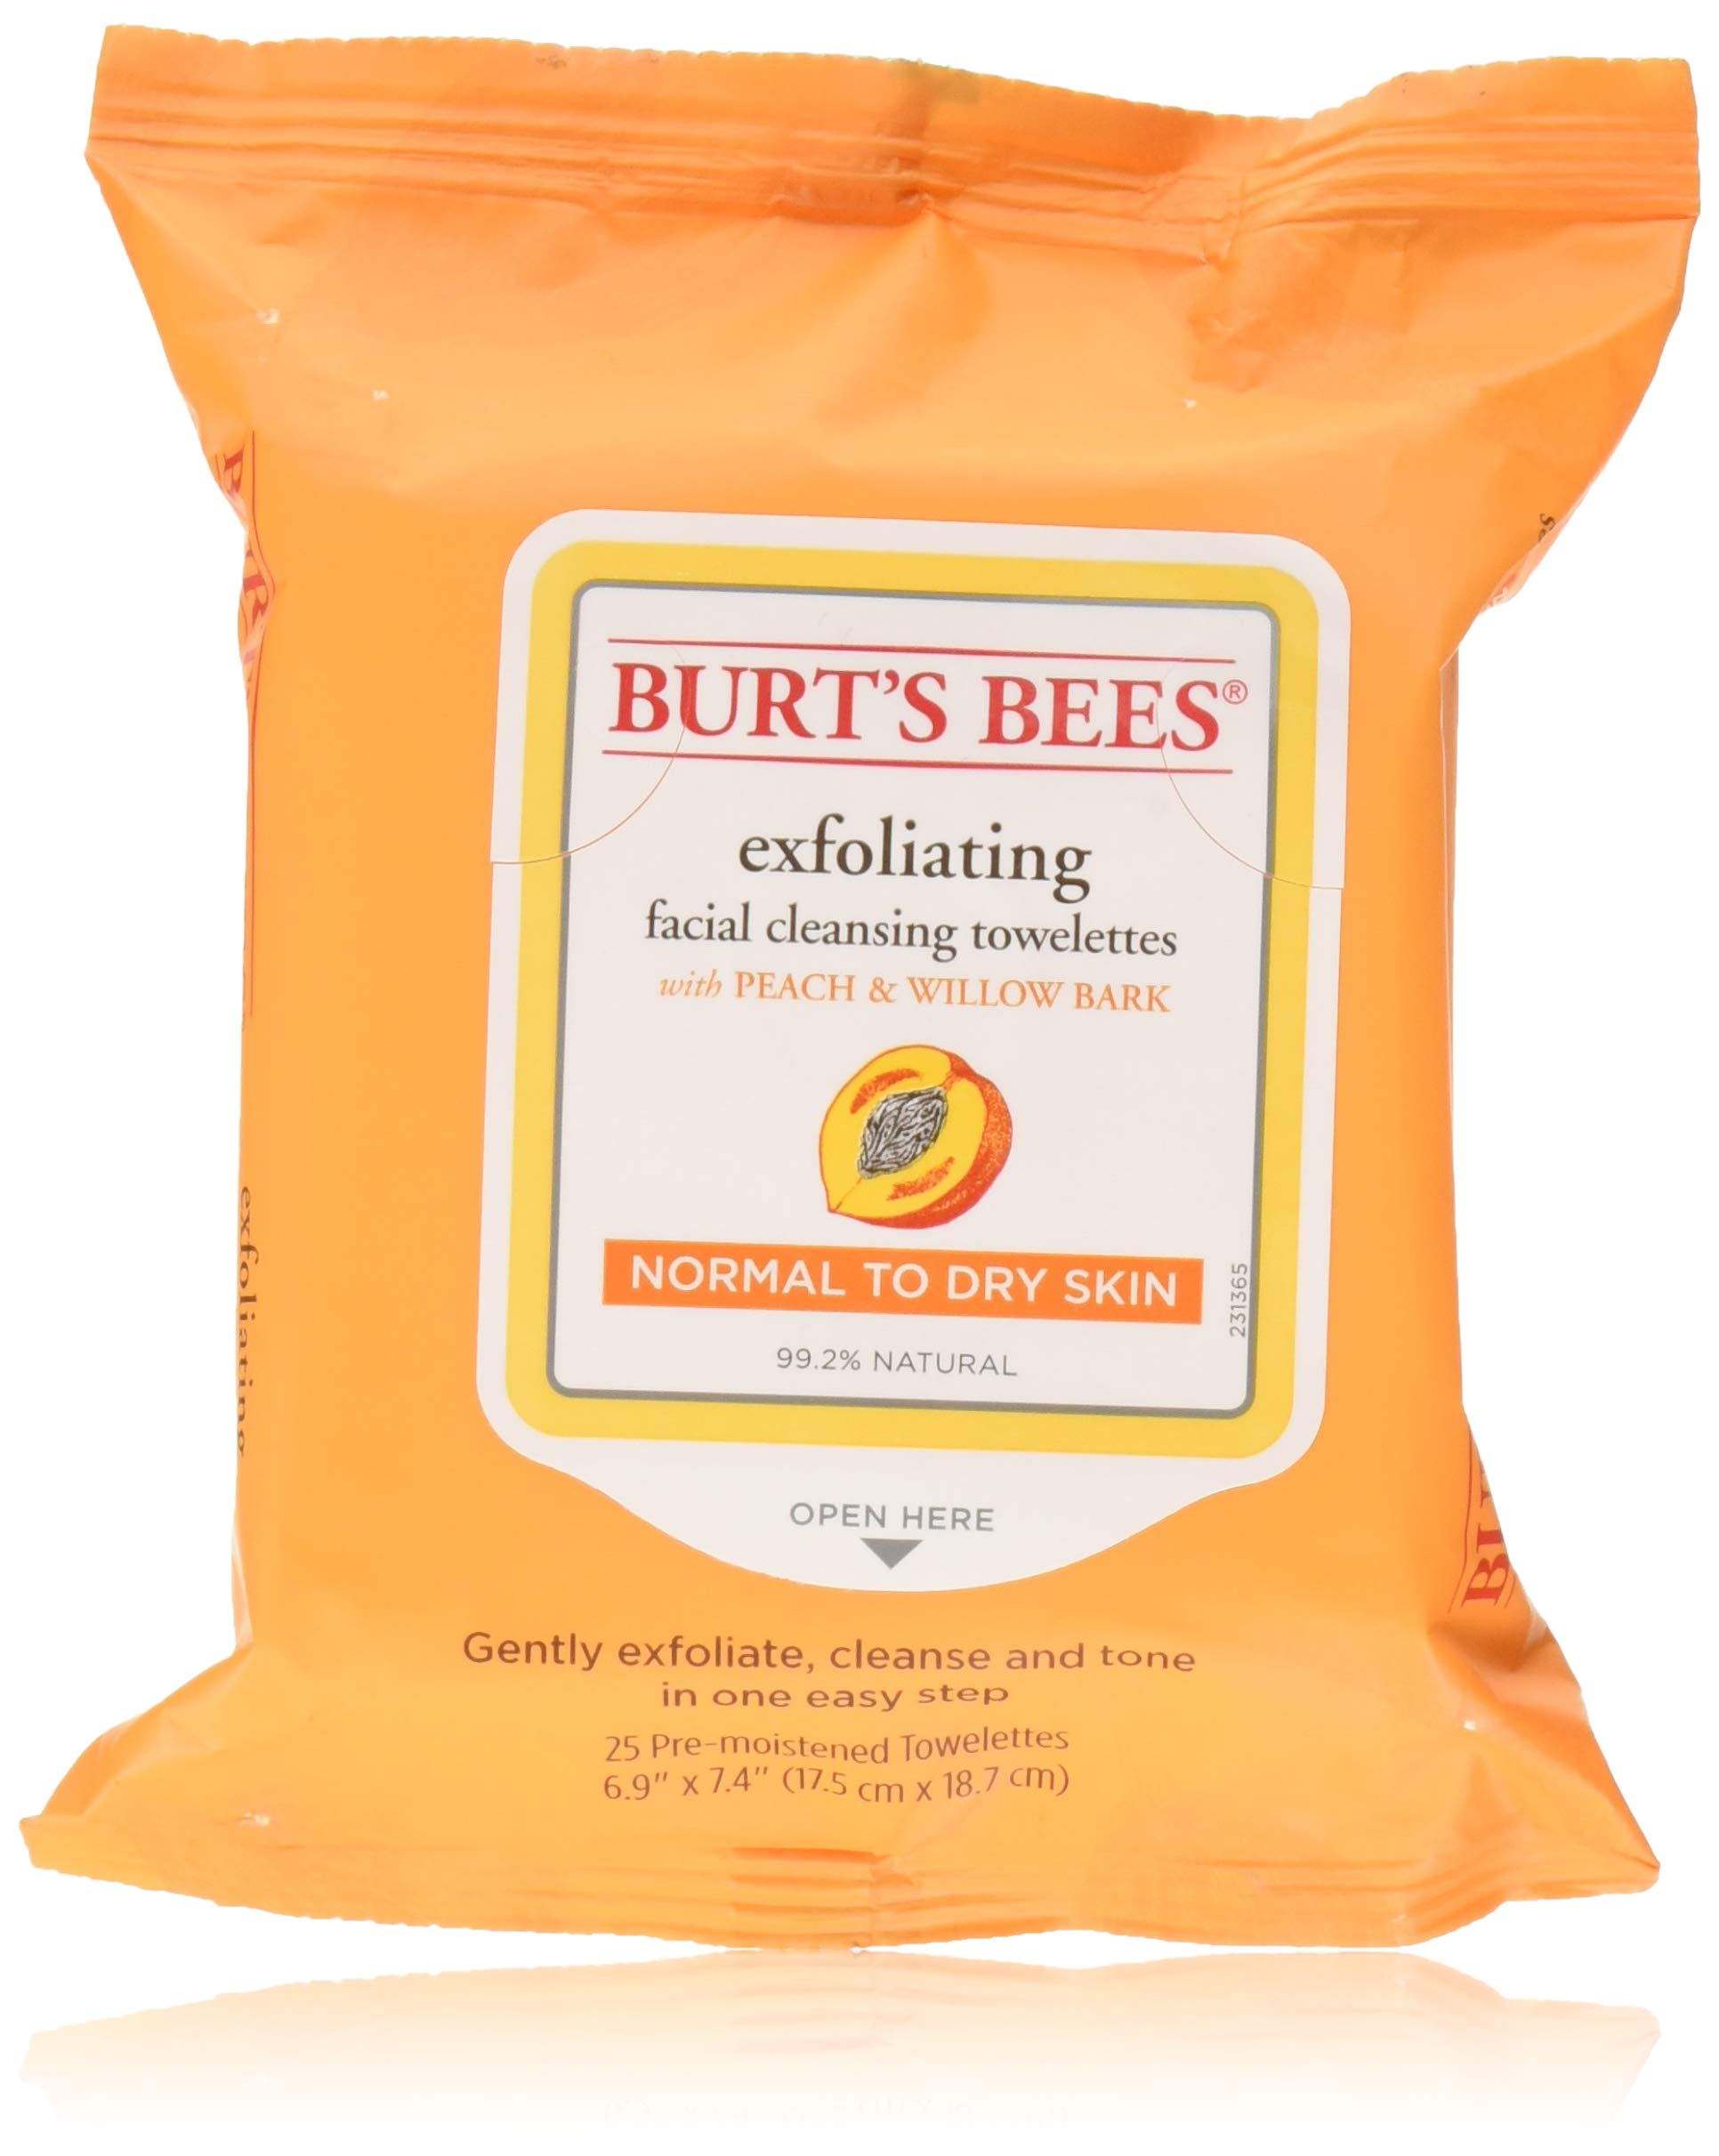 Burt's Bees Facial Cleansing Towelettes, Peach and Willow Bark, 25 Count (Pack of 12)